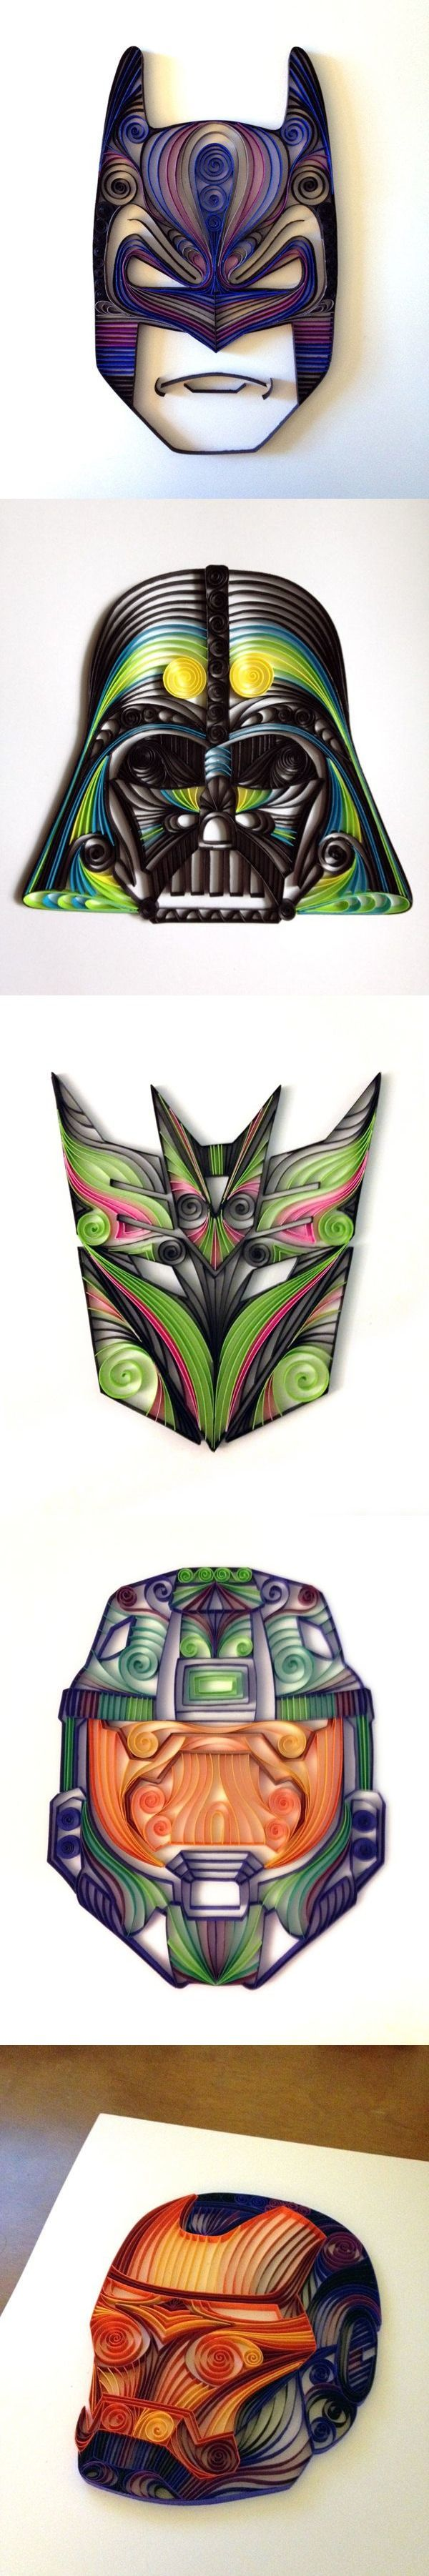 Delightfully Geeky Paper Quilling